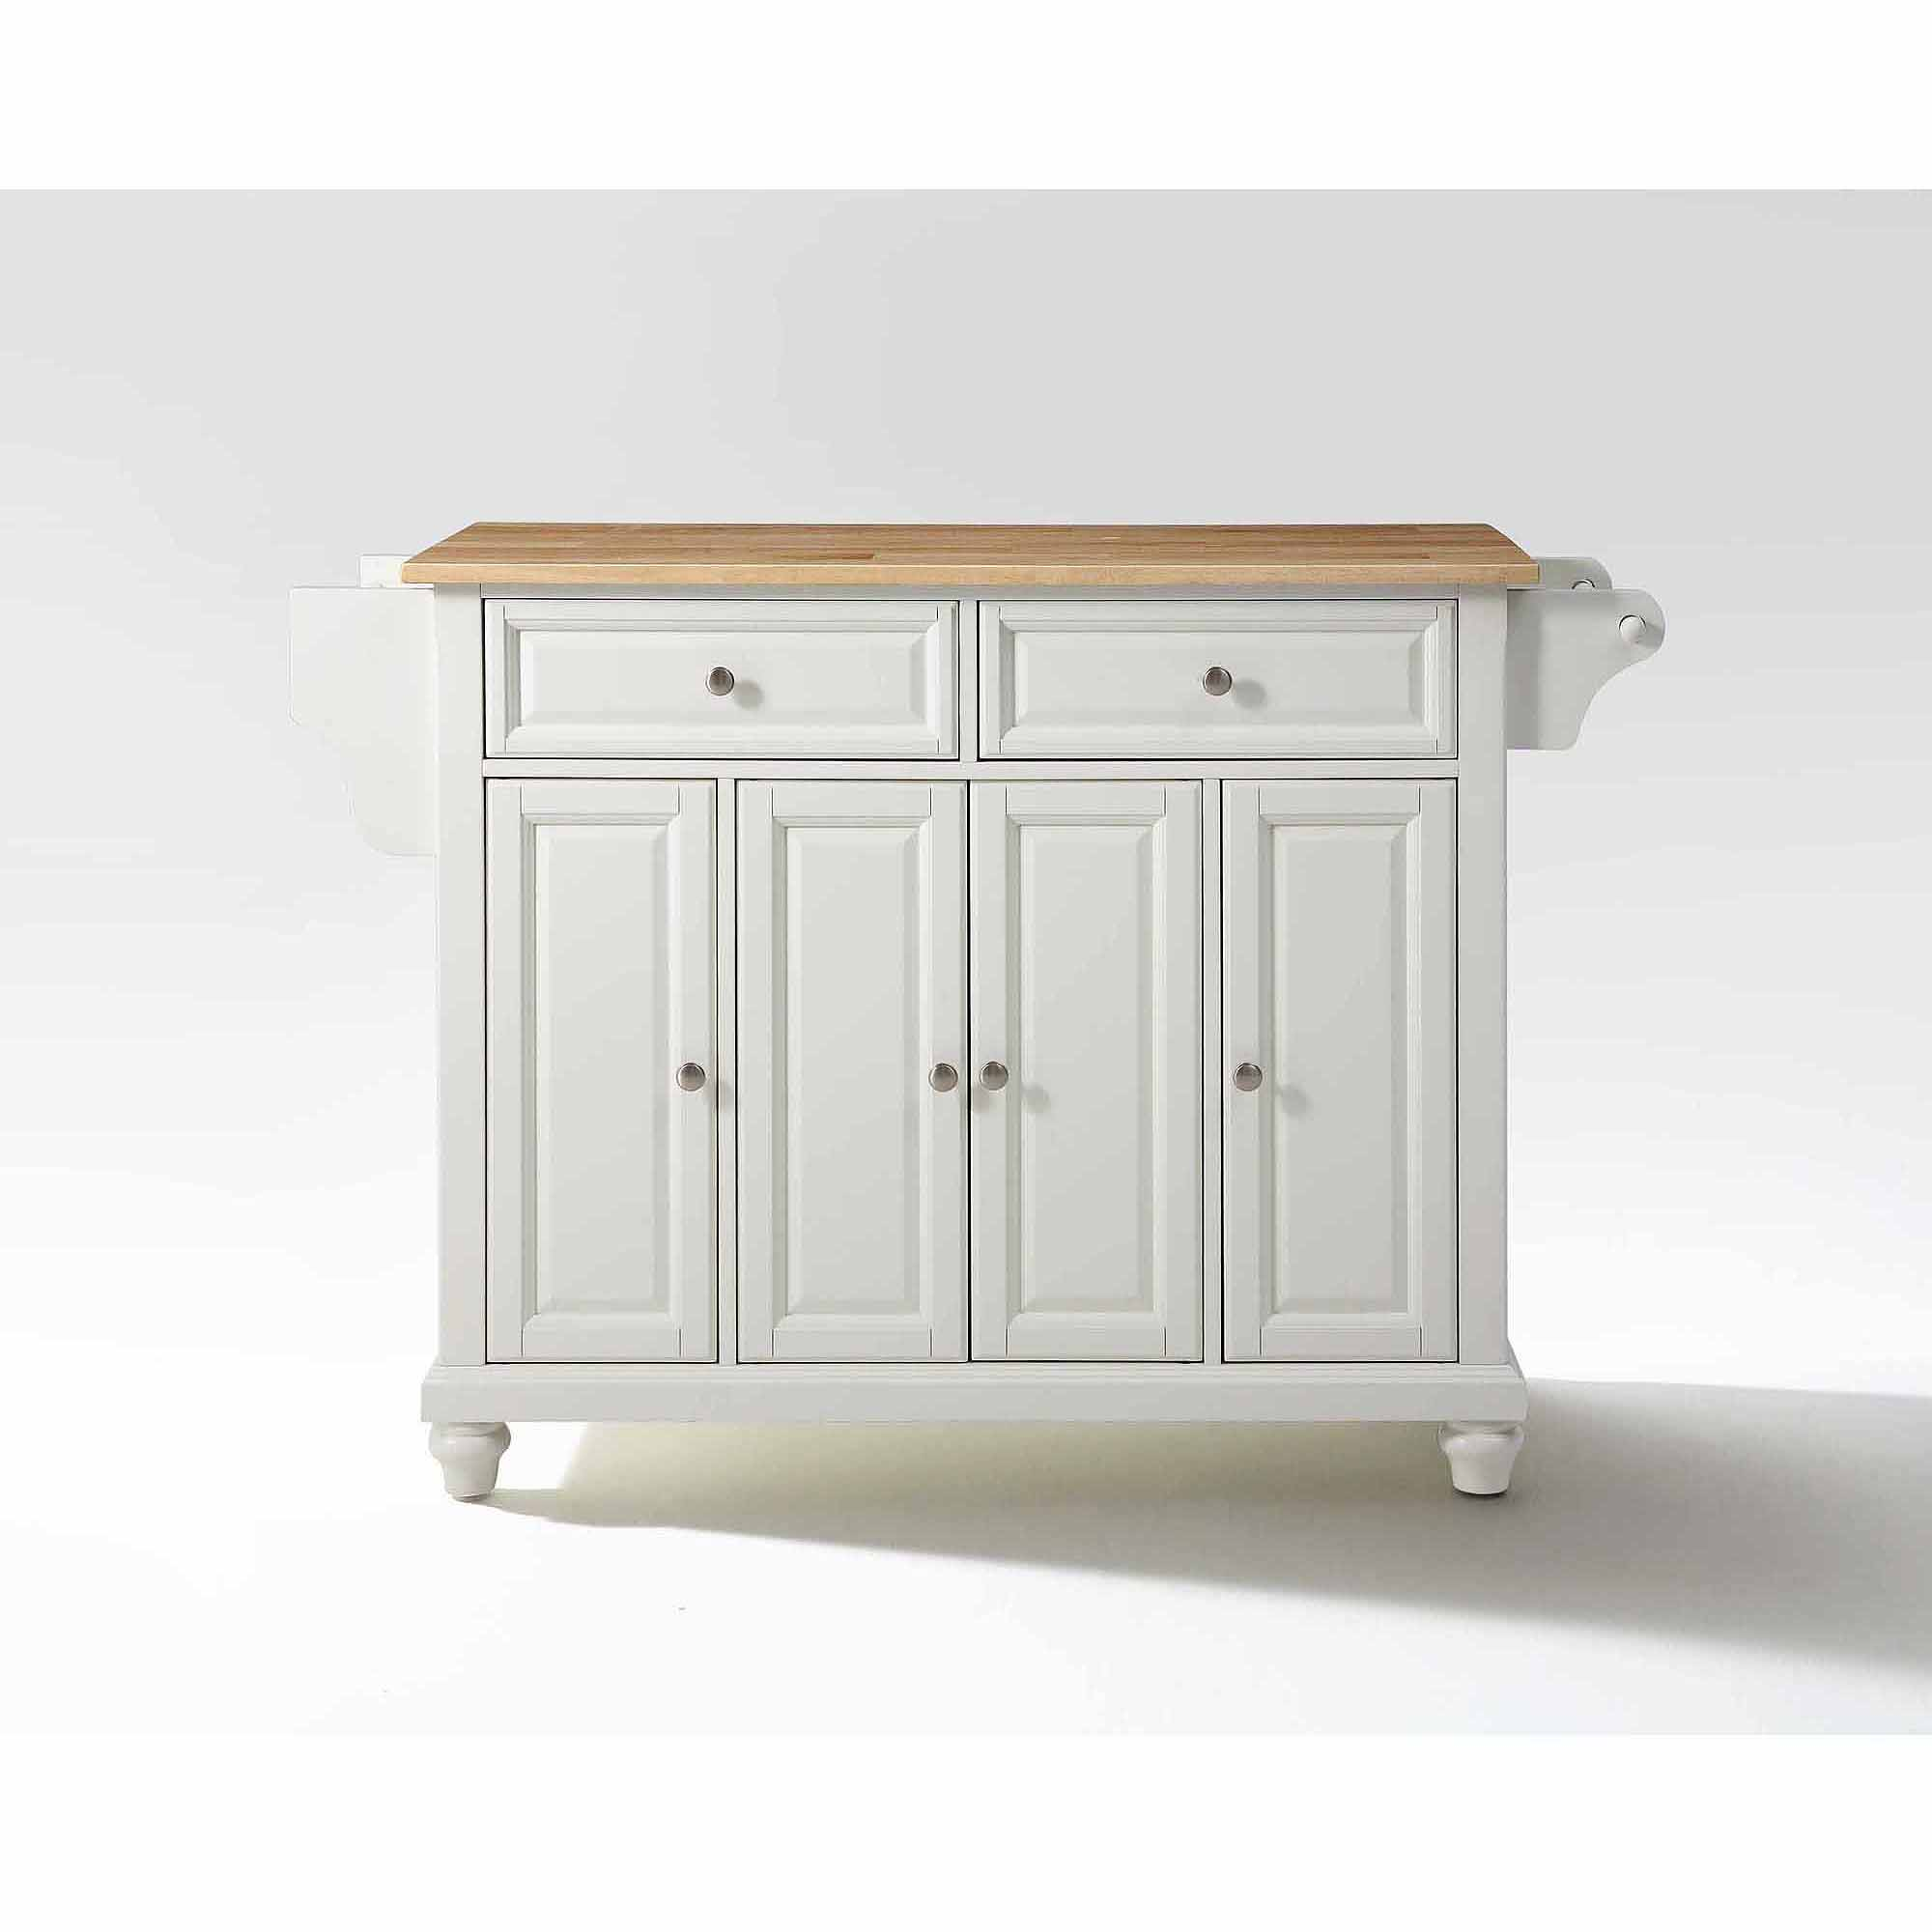 crosley kitchen island lowes cabinet knobs furniture cambridge natural wood top walmart com